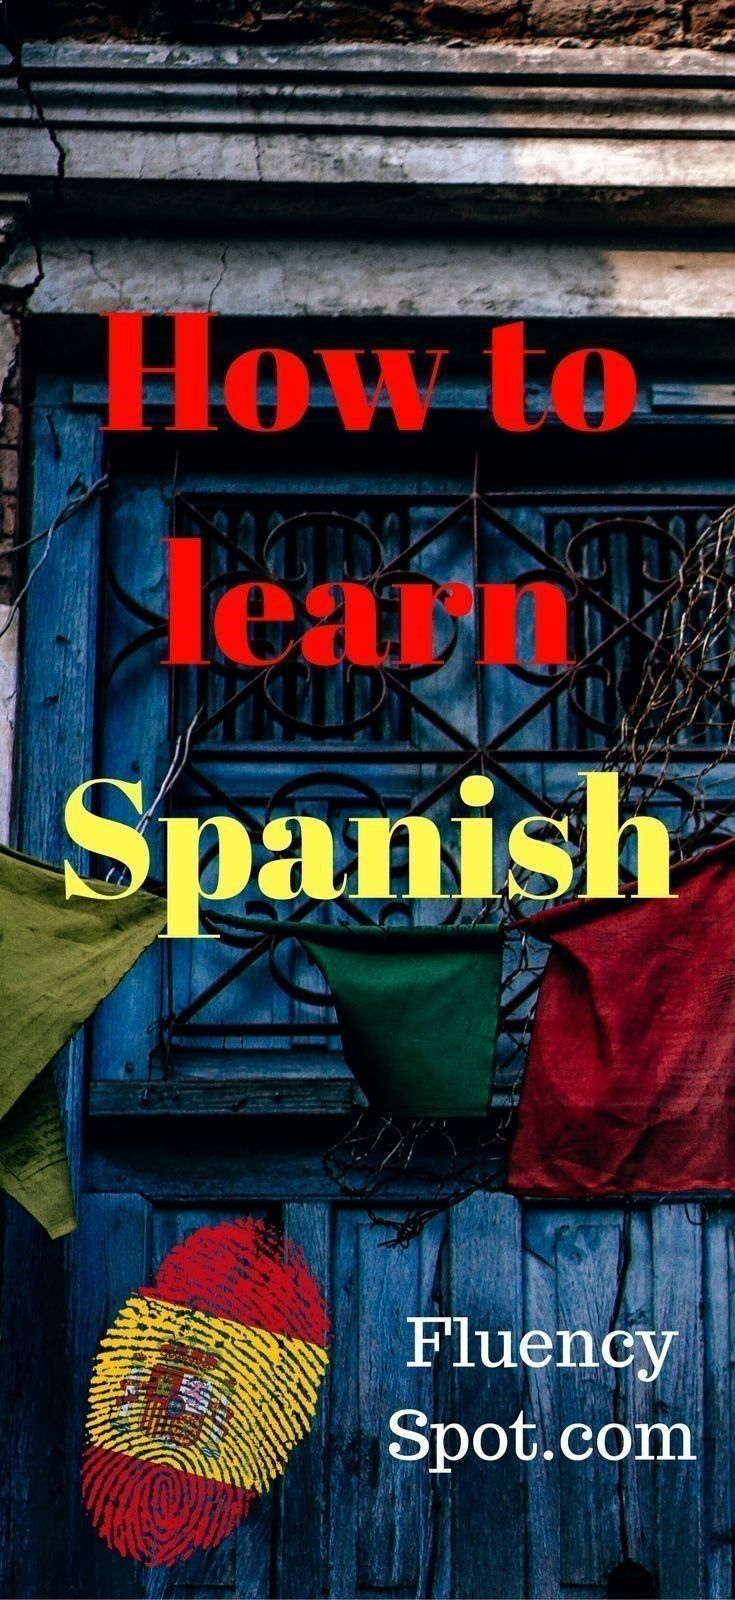 So how to learn Spanish? In this post you can find the answer to this question. And you can learn it for free. More tips on how to learn Spanish. learn spanish | learn spanish for adults | learn spanish for kids | learn spanish free | learn spanish fast | Learn Spanish | Learn Spanish Today | Learn Spanish Free Online #learnspanishforadultsfree #learnspanishtips #spanishlanguagetips